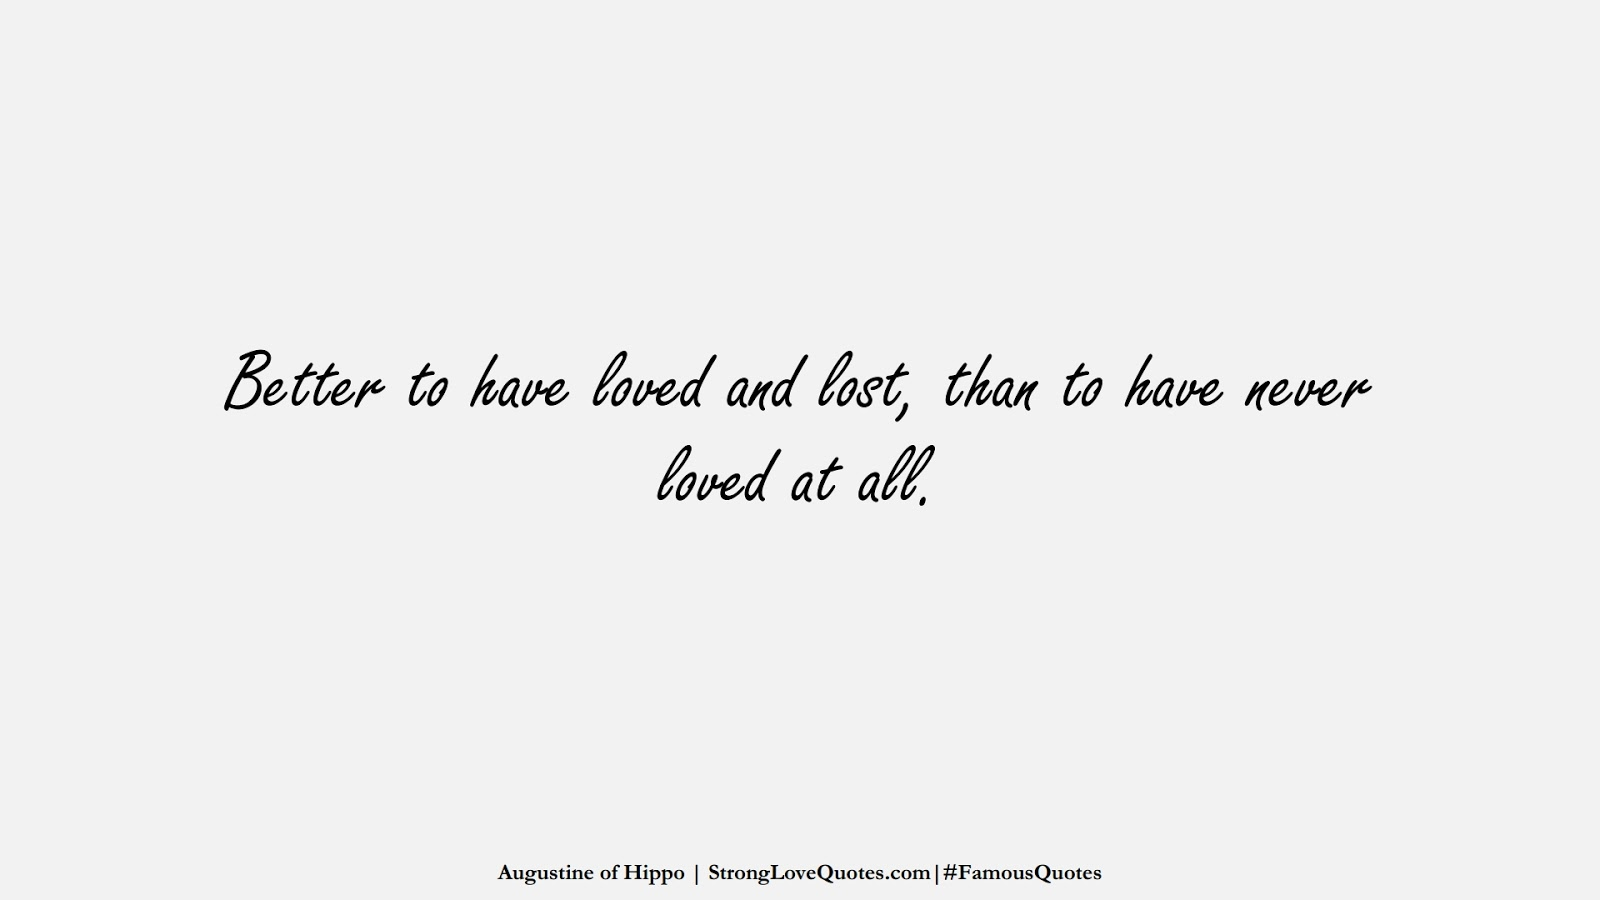 Better to have loved and lost, than to have never loved at all. (Augustine of Hippo);  #FamousQuotes